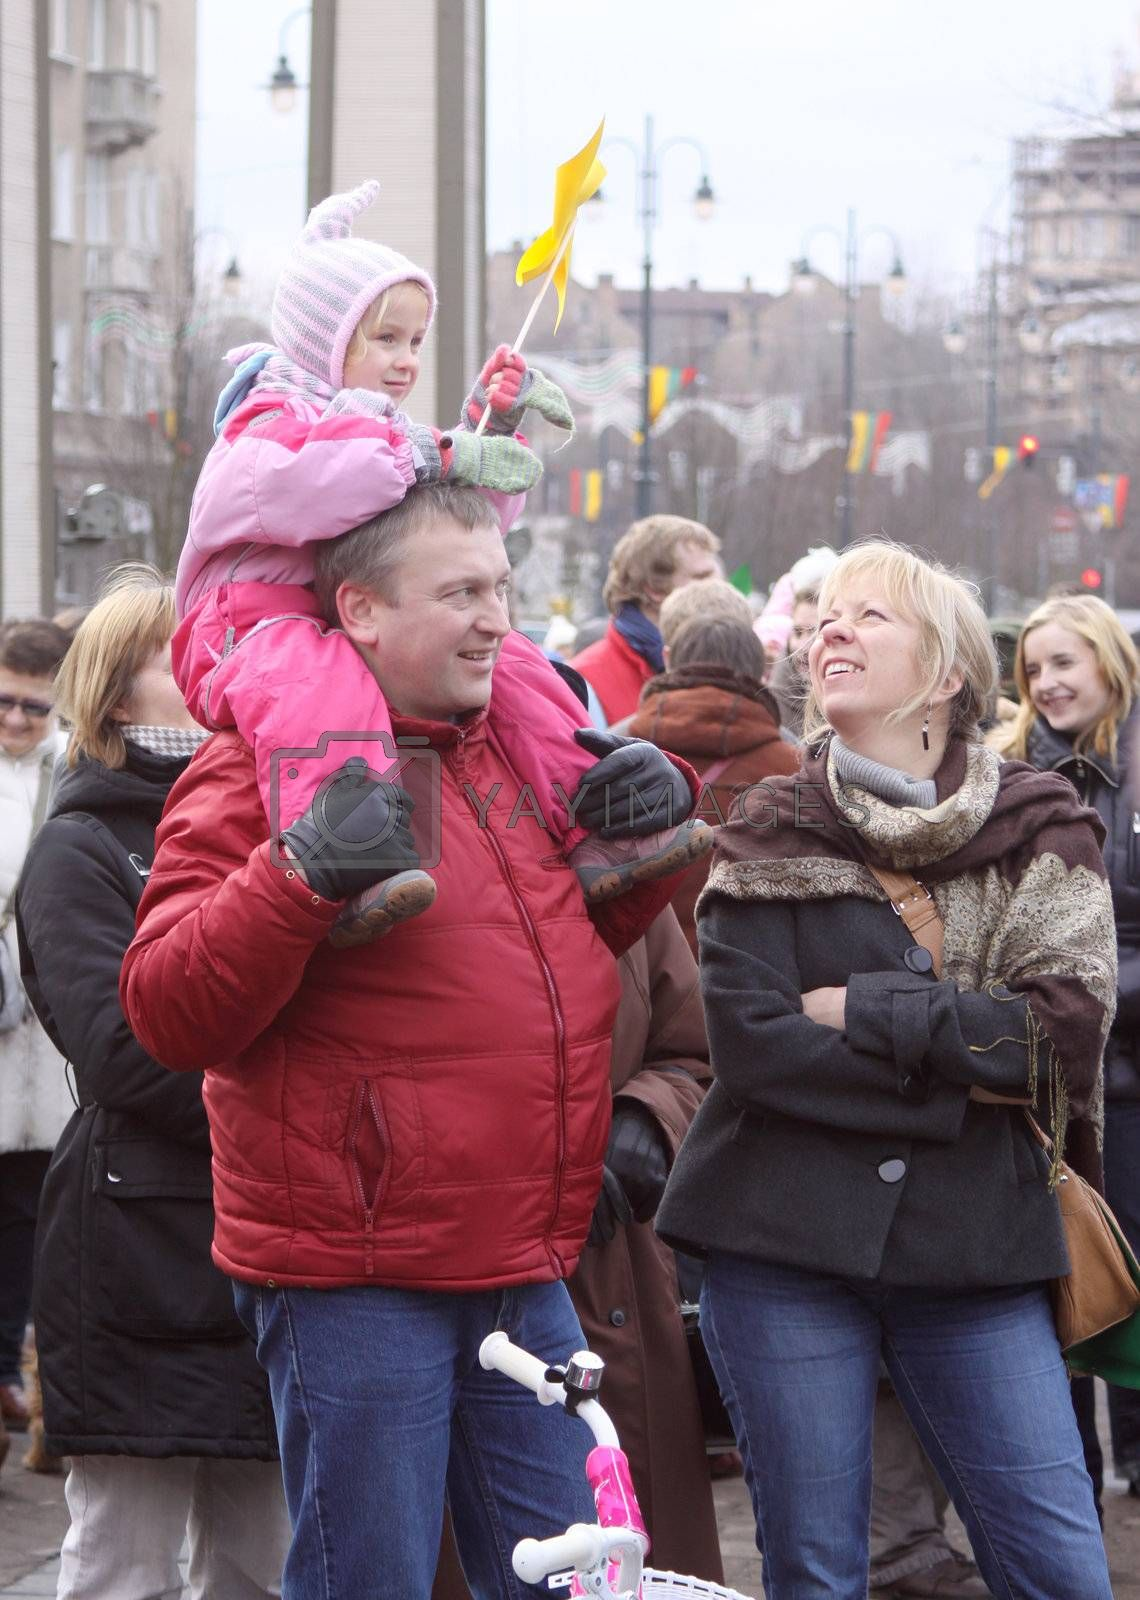 Happy family at the Lithuanian independence day celebration in Vilnius on 11th of March